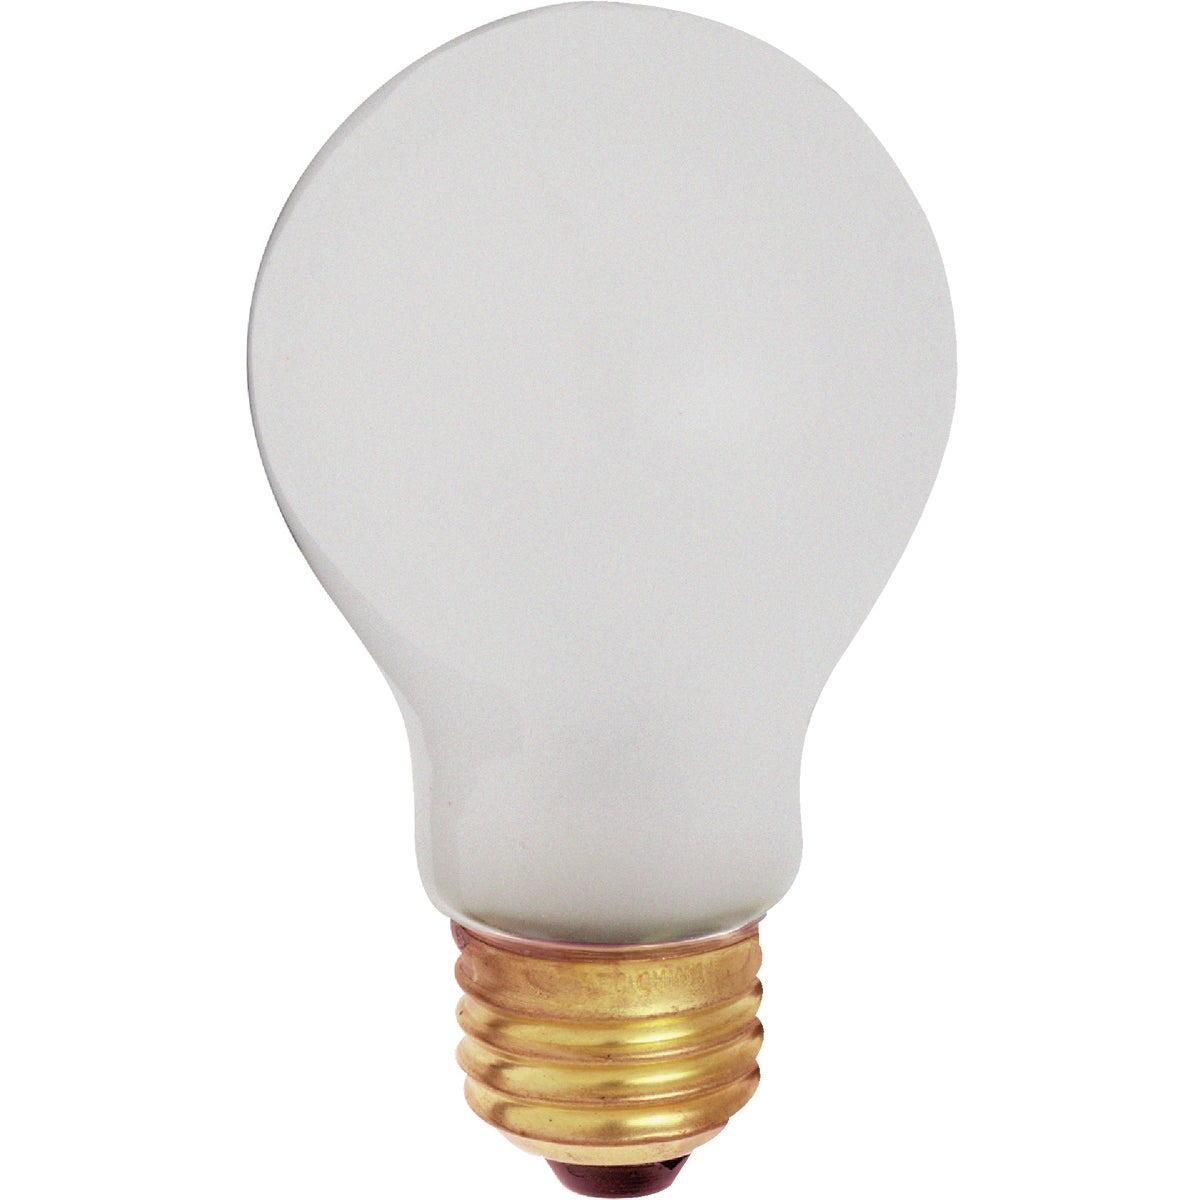 100W MED TOUGHSHELL BULB - 03951 by Westinghouse Lightng